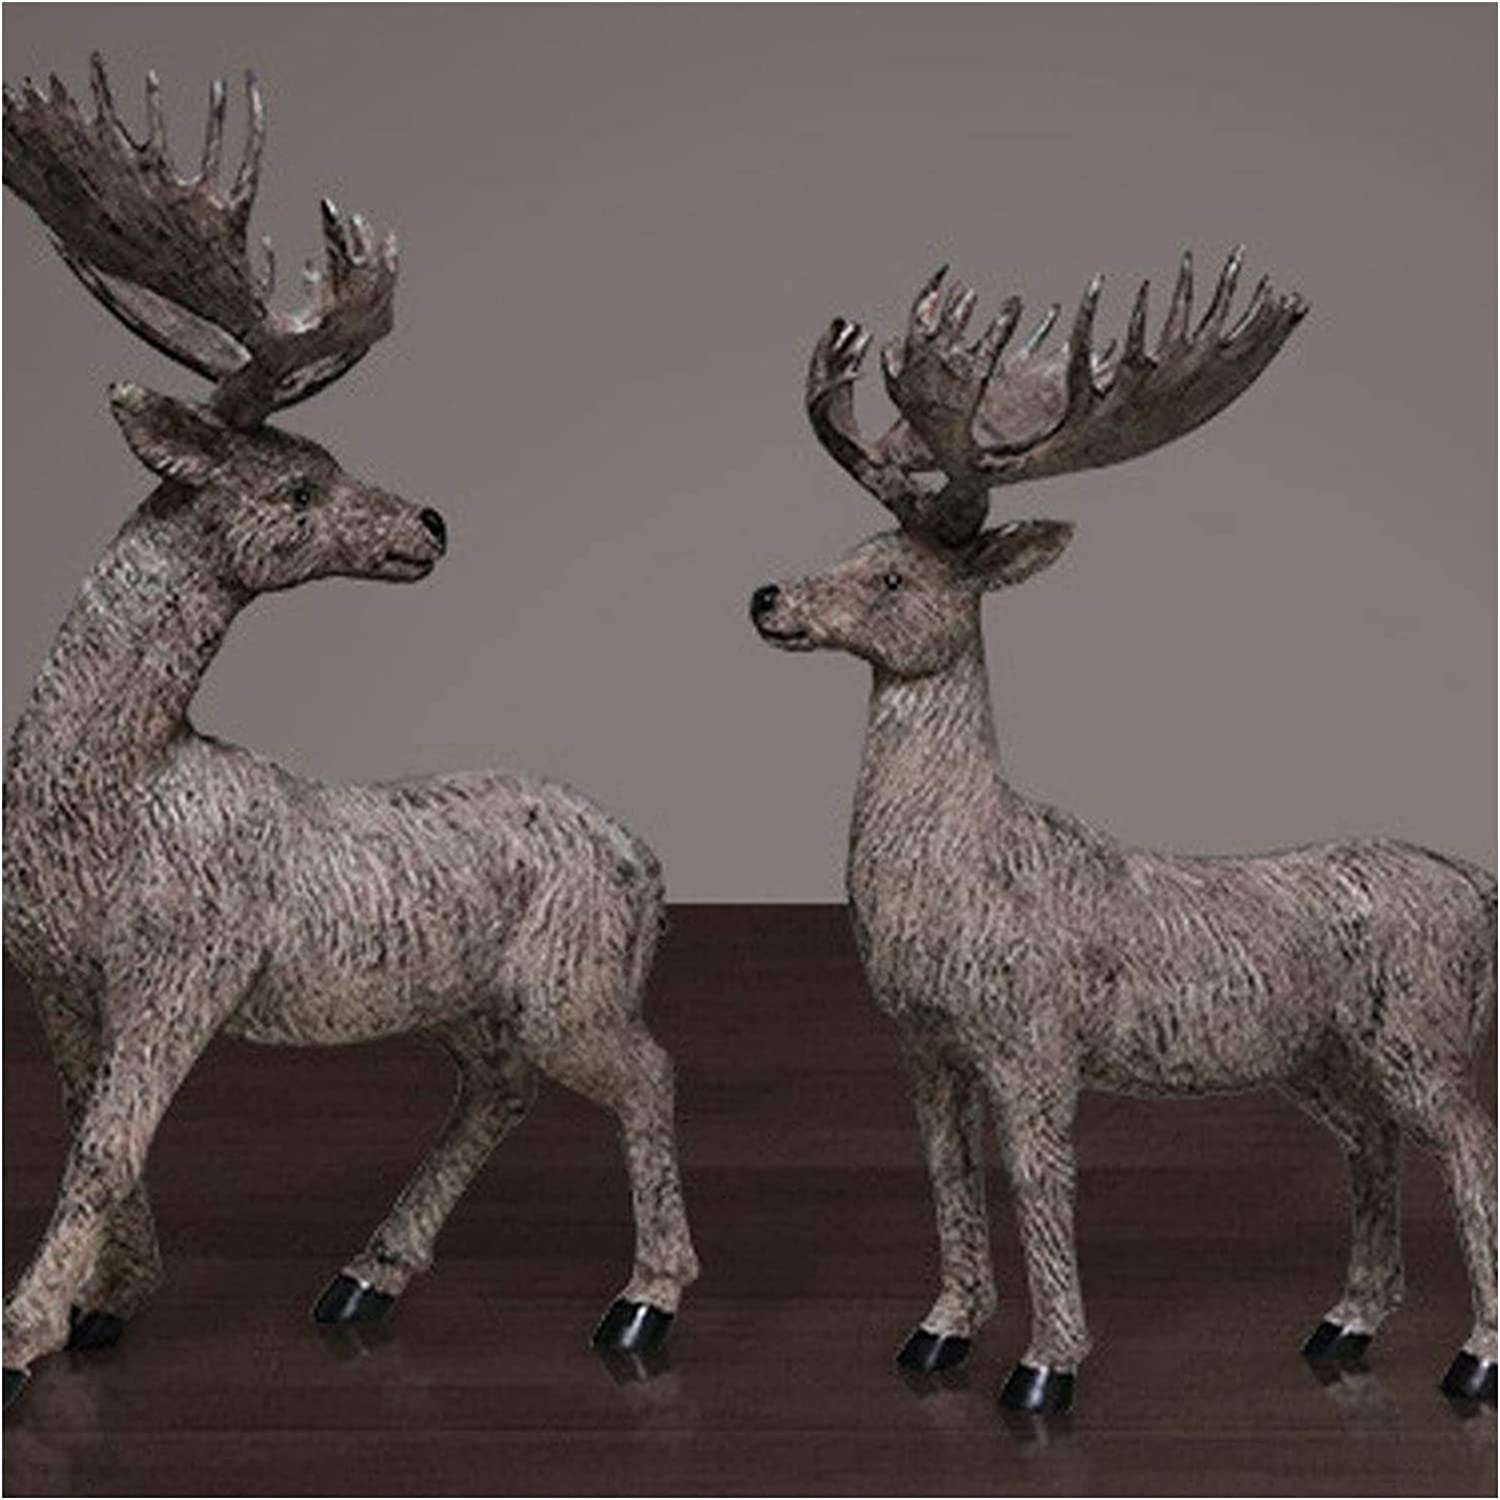 Home Decor House Deer Ornaments Creative TV Shipping included Large discharge sale Ca Living Porch Room